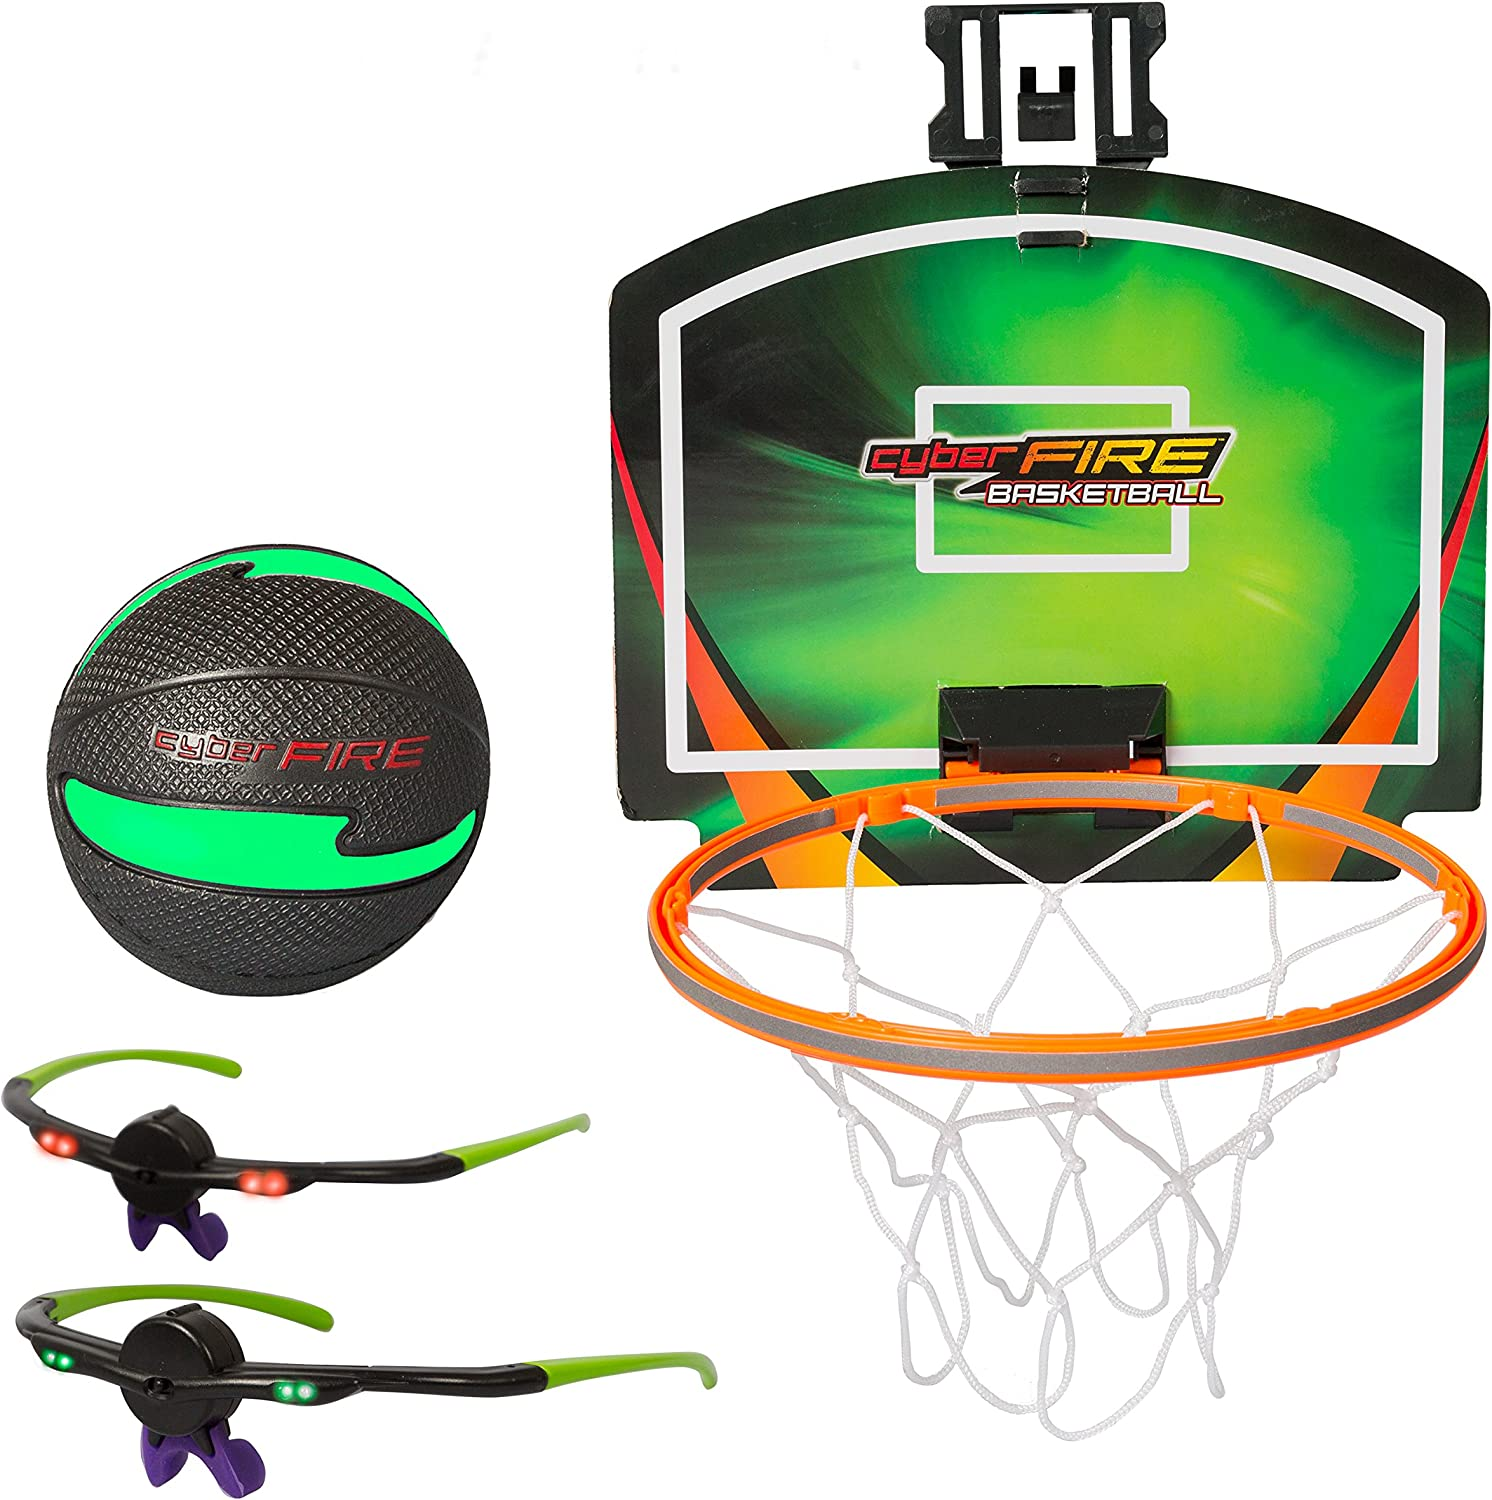 Cyberfire  Glow In The Dark Sports Ball  Indoor   Outdoor Sports Ball With LED Line Of Sight Technology Glasses ( Basketball).